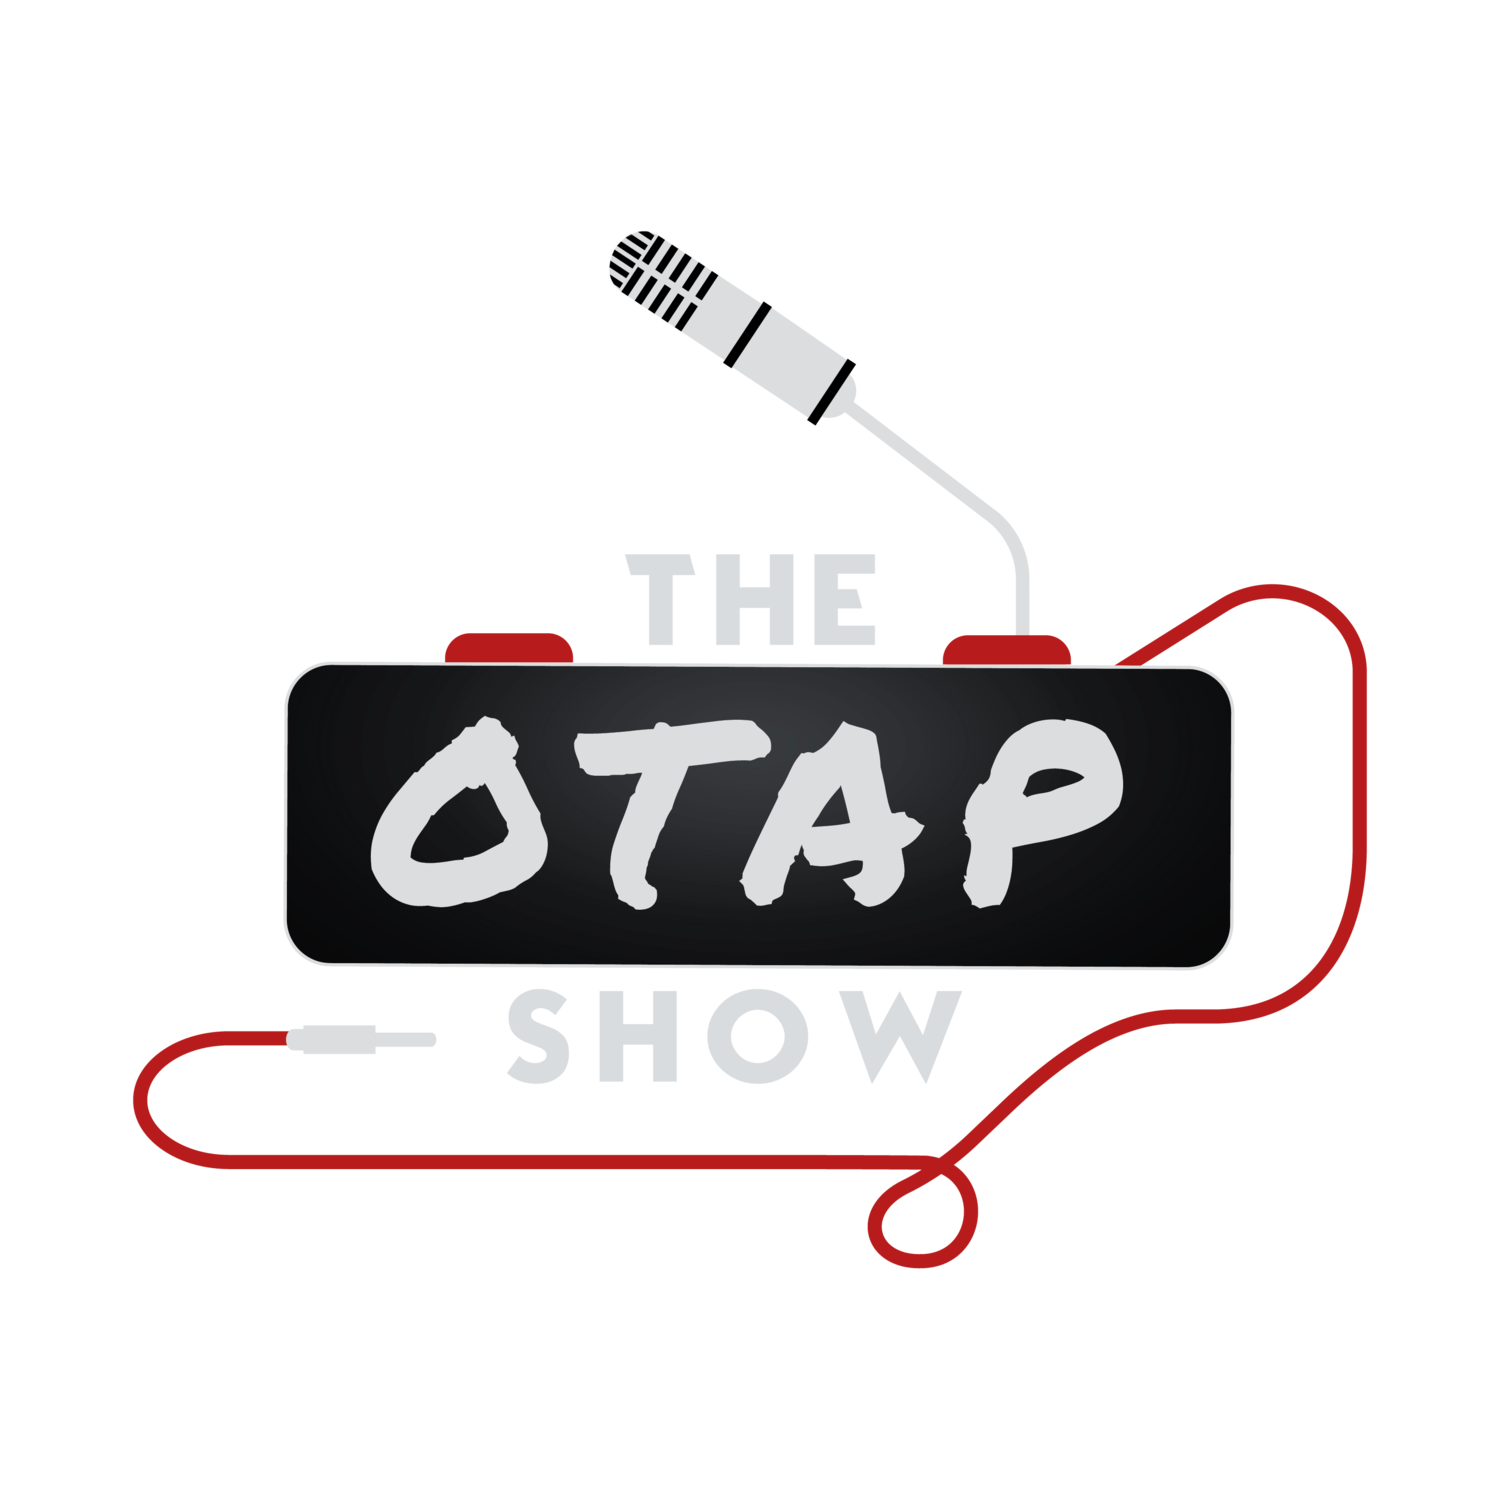 The OTAP Show